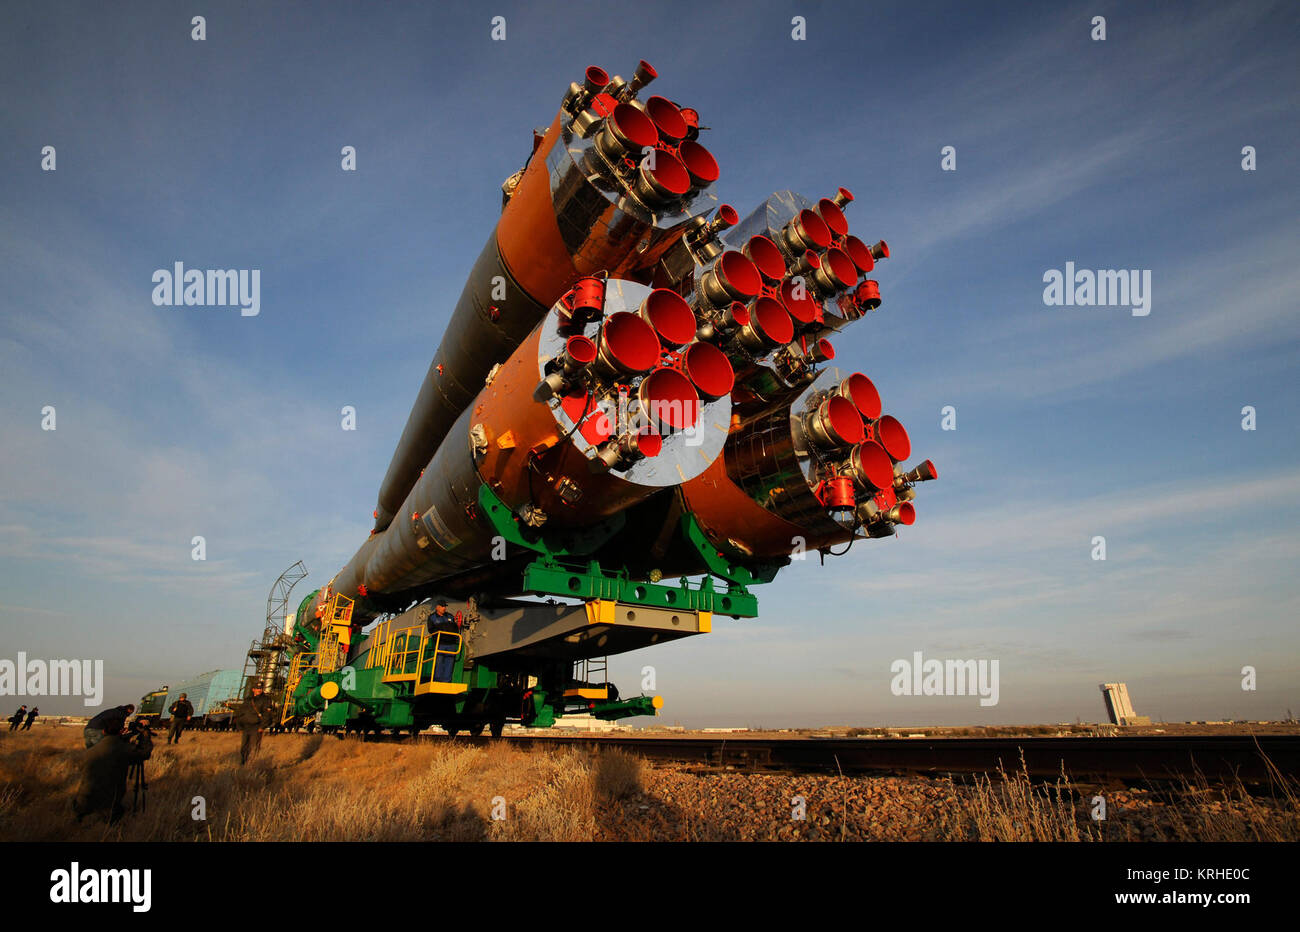 The Soyuz TMA-13 spacecraft is transported by railcar to its launch pad at the Baikonur Cosmodrome in Kazakhstan, - Stock Image